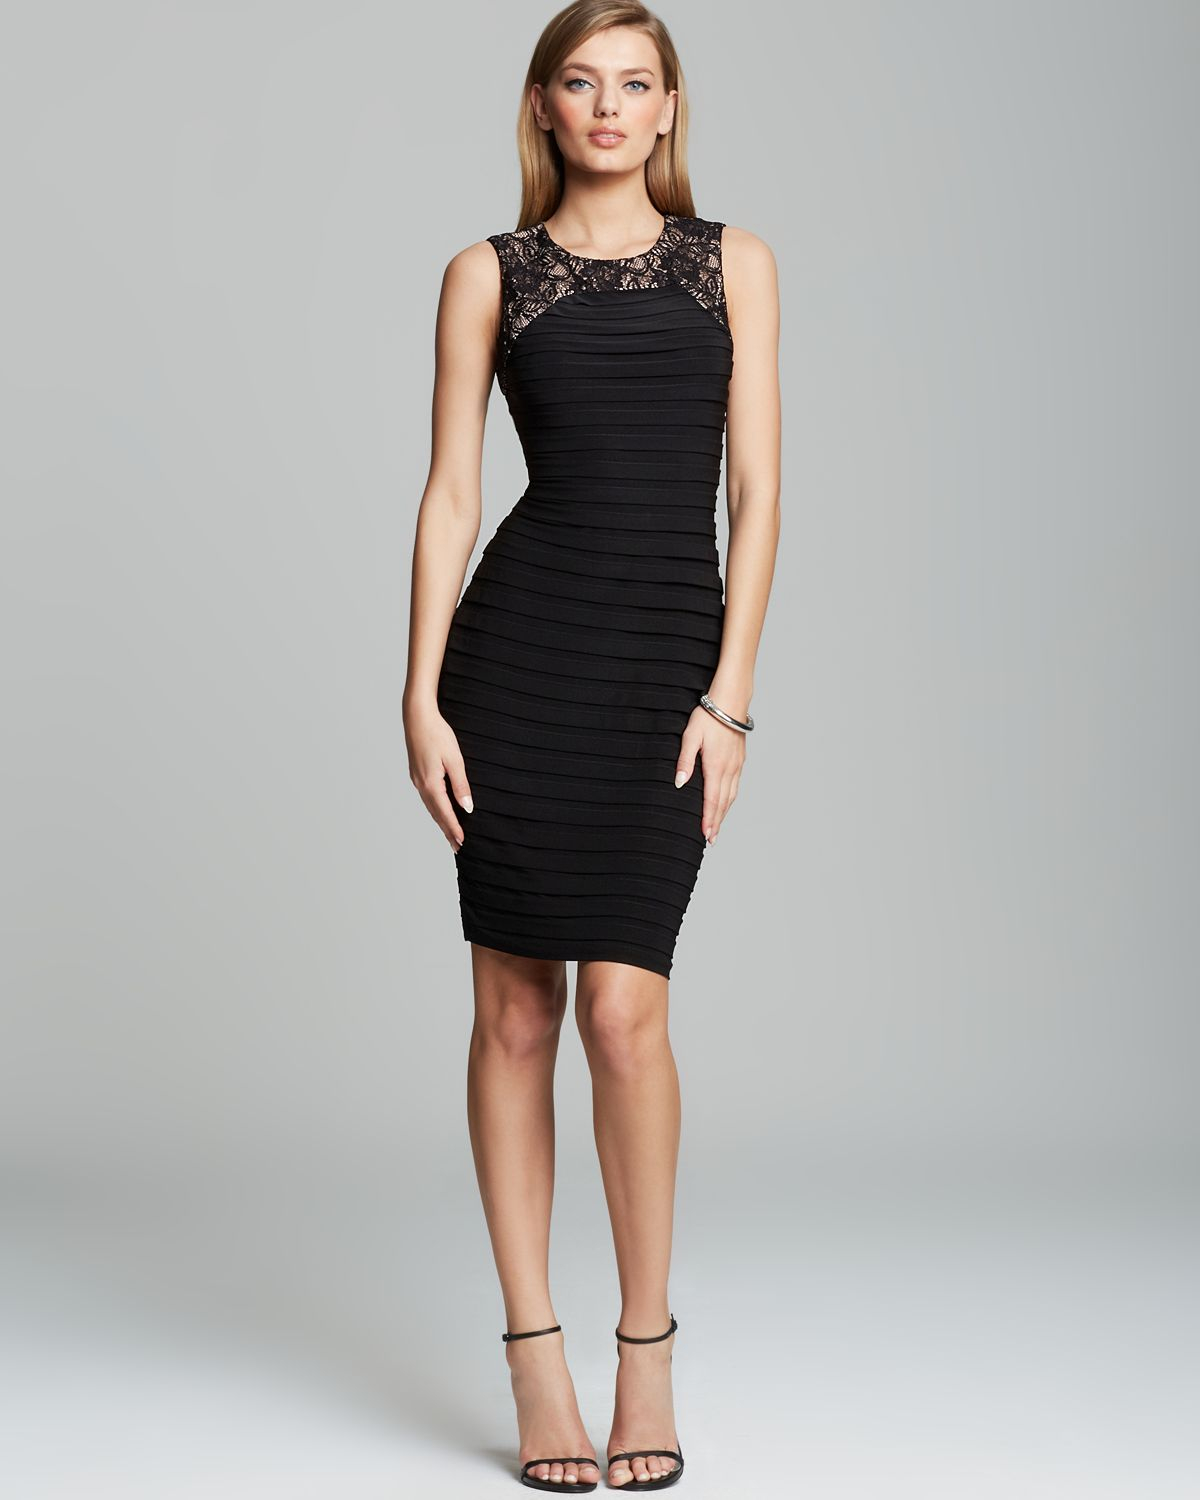 edfebf26cb2b Gallery. Previously sold at: Bloomingdale's · Women's Adrianna Papell Lace  Dress ...